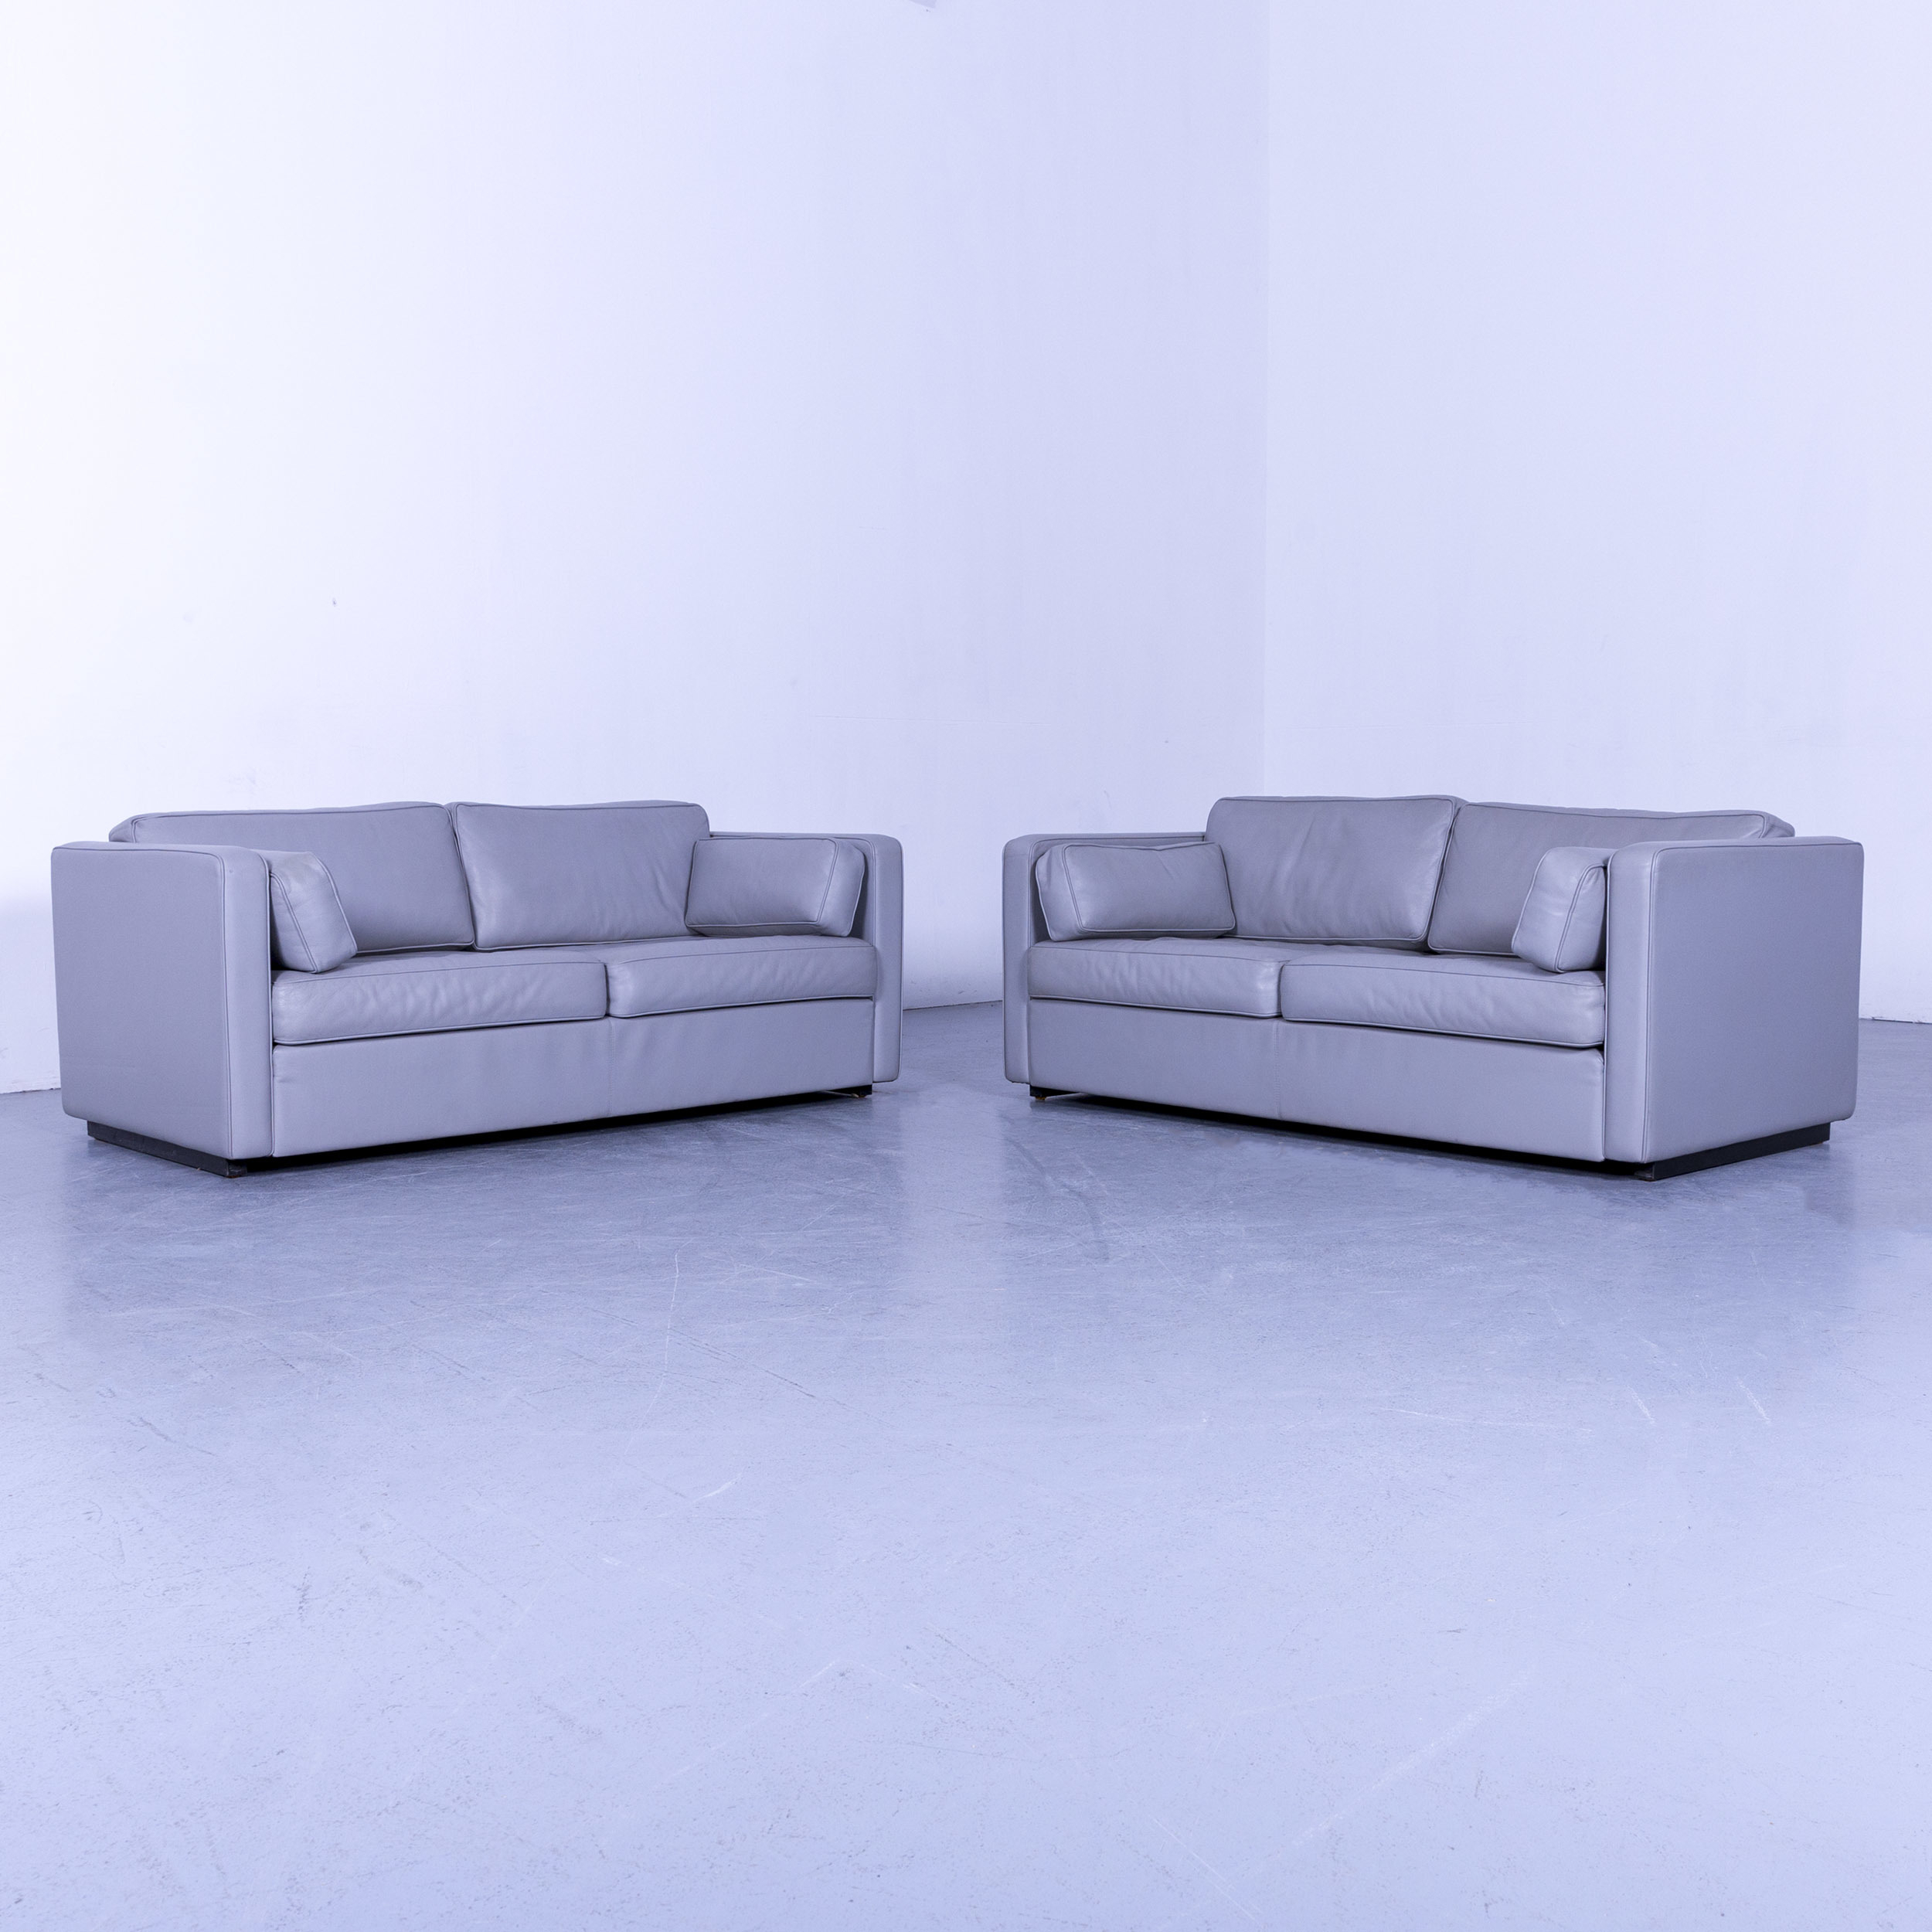 Walter Knoll Designer Leather Sofa Set Gray Two Seater Couch Genuine Regarding Walter Leather Sofa Chairs (View 22 of 25)